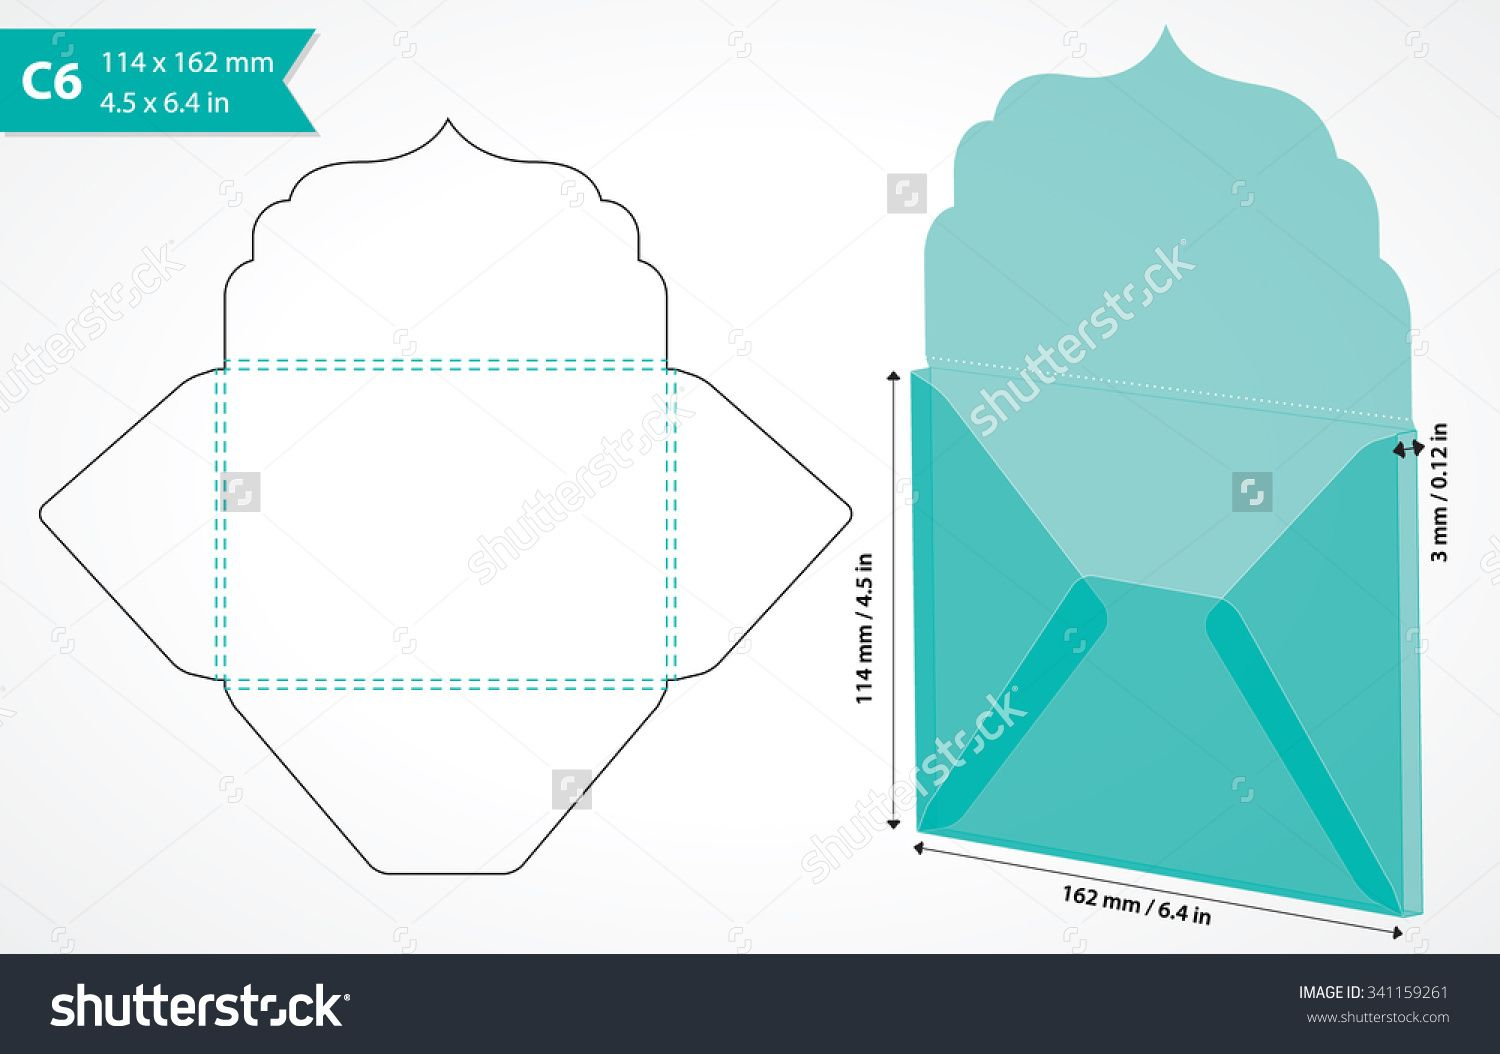 Envelope Template With Flap Design Easy To Fold May Be Used For